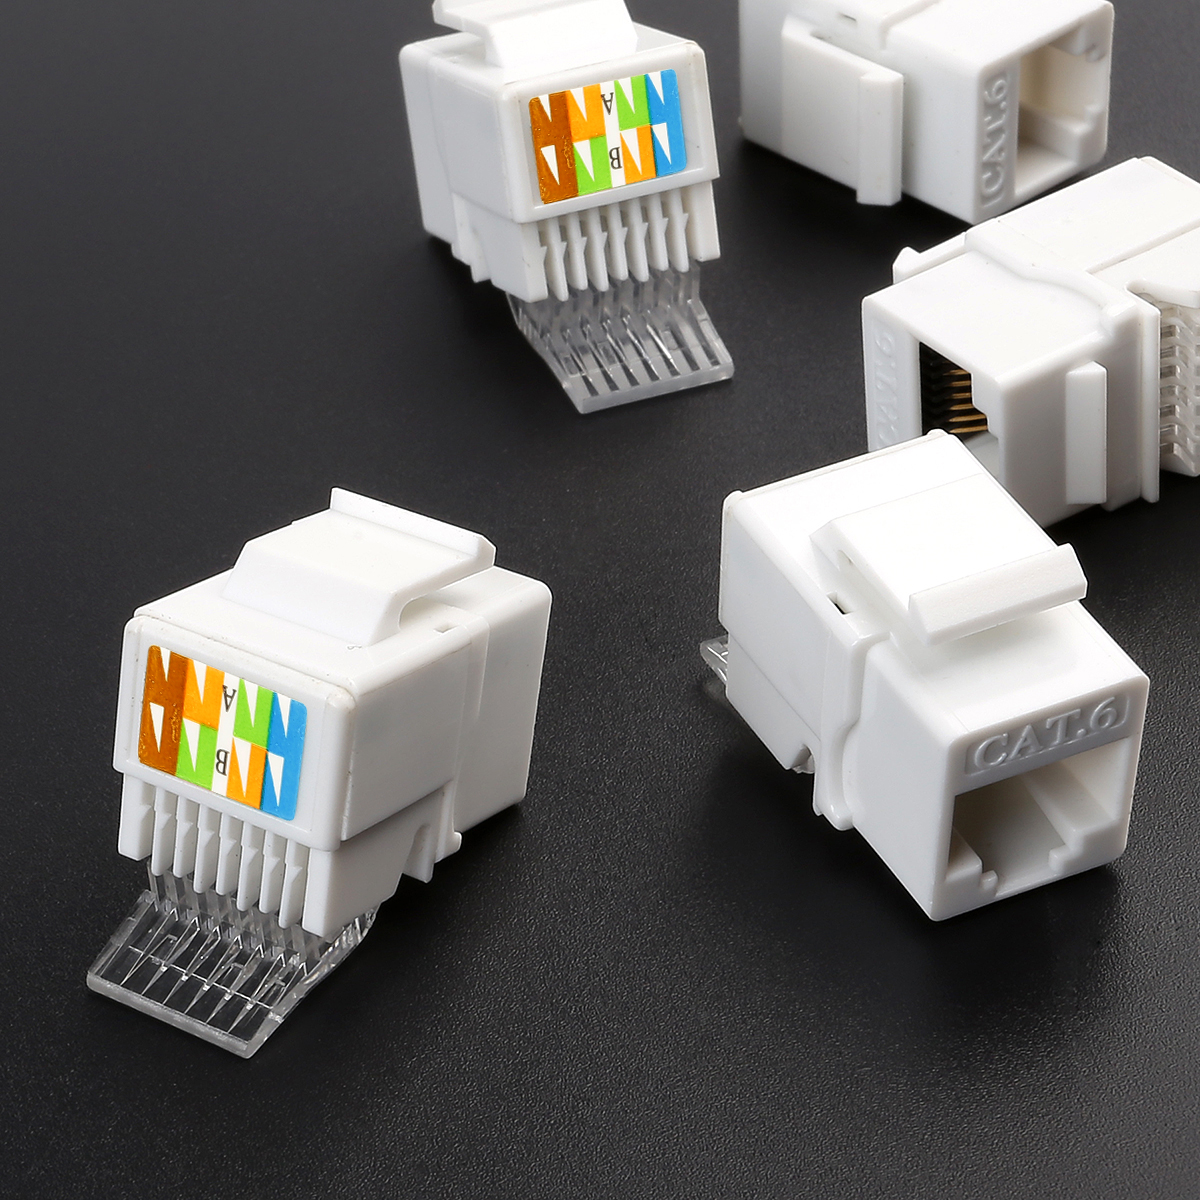 10x Cat6 Rj45 Connector Keystone Jack Network Lan Insert Snap In Mount Patch Cable Panel Networking Wiring Block 1u Ebay Please Check The Below Delivery Details Carefully Before You Purchase If Have Any Problem Contact Us Via Message